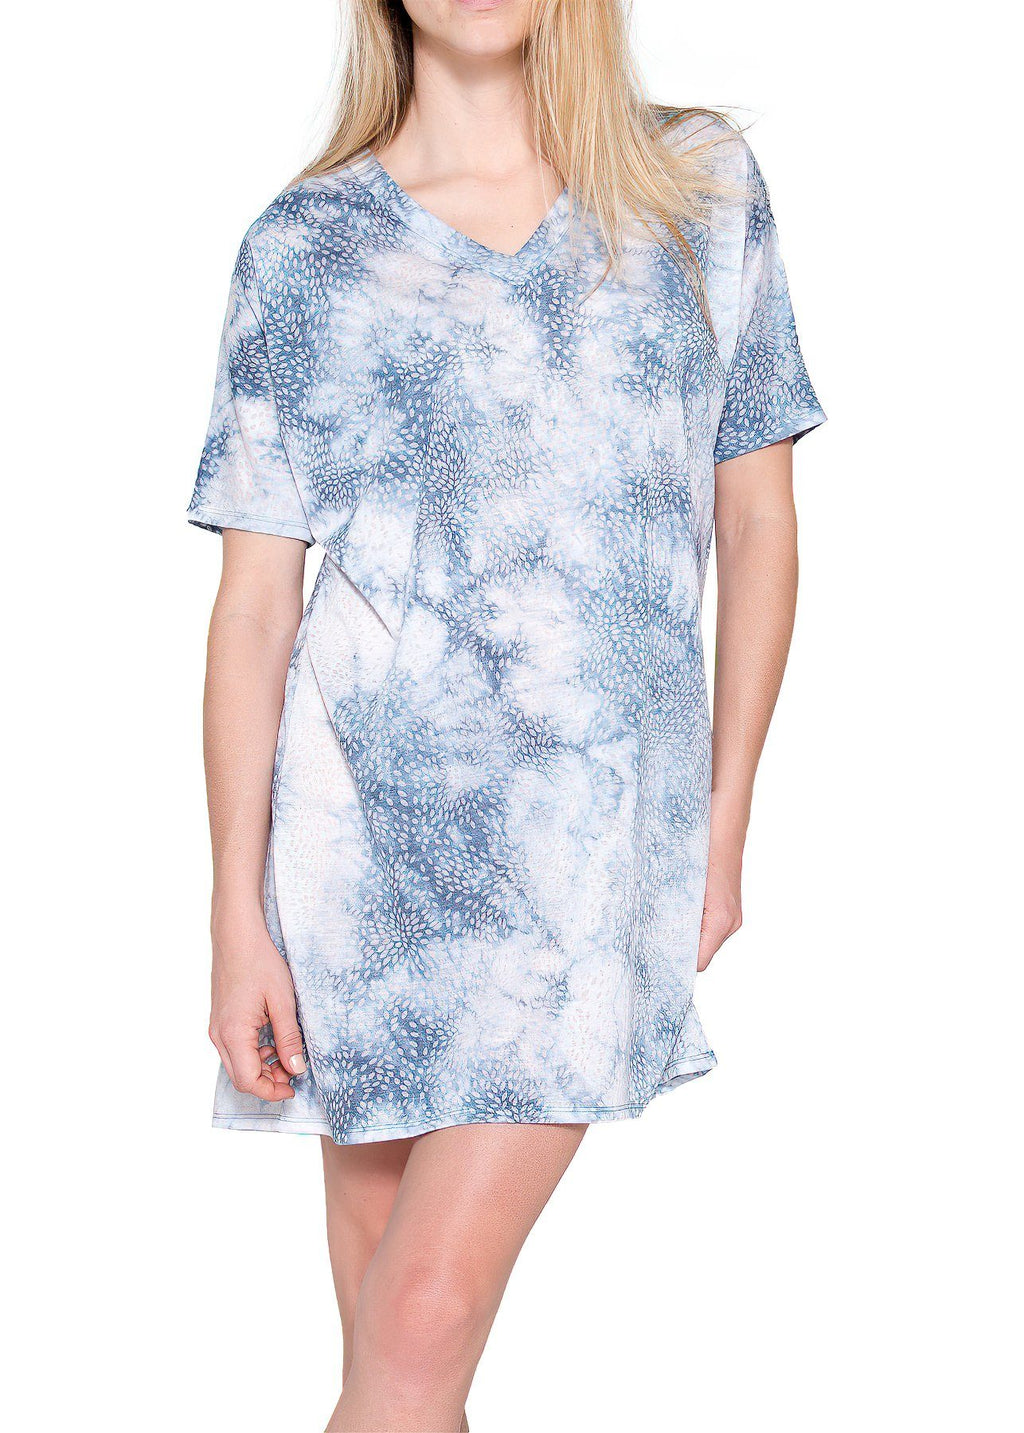 Artire Nightshirt - Chambray Mystique Intimates